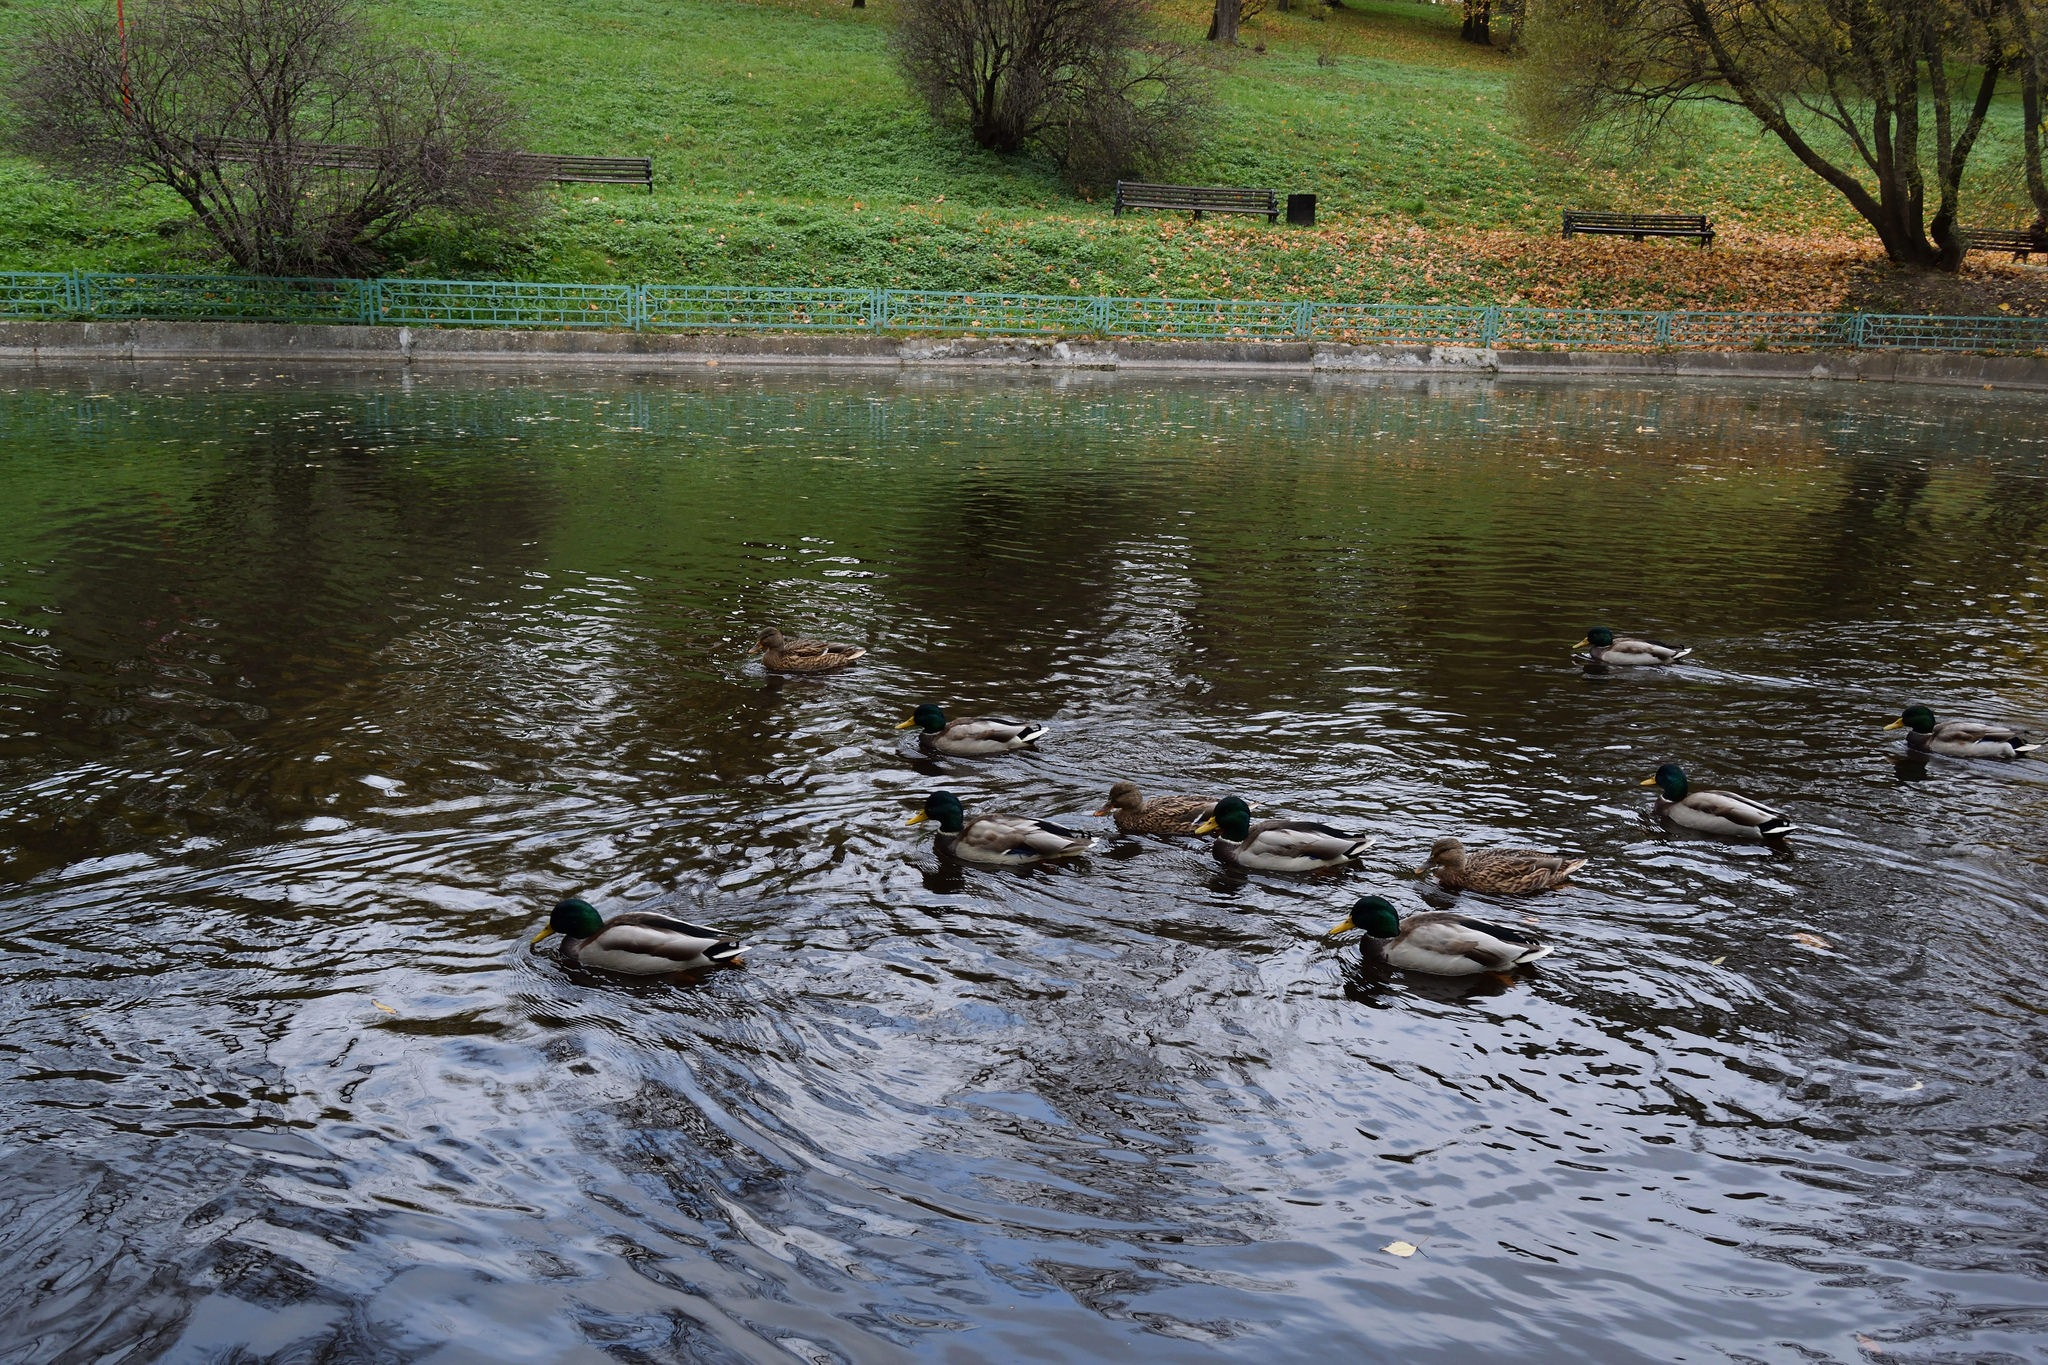 Autumn in Kolomenskoye. Pond with ducks. by Andrey Gordeeff